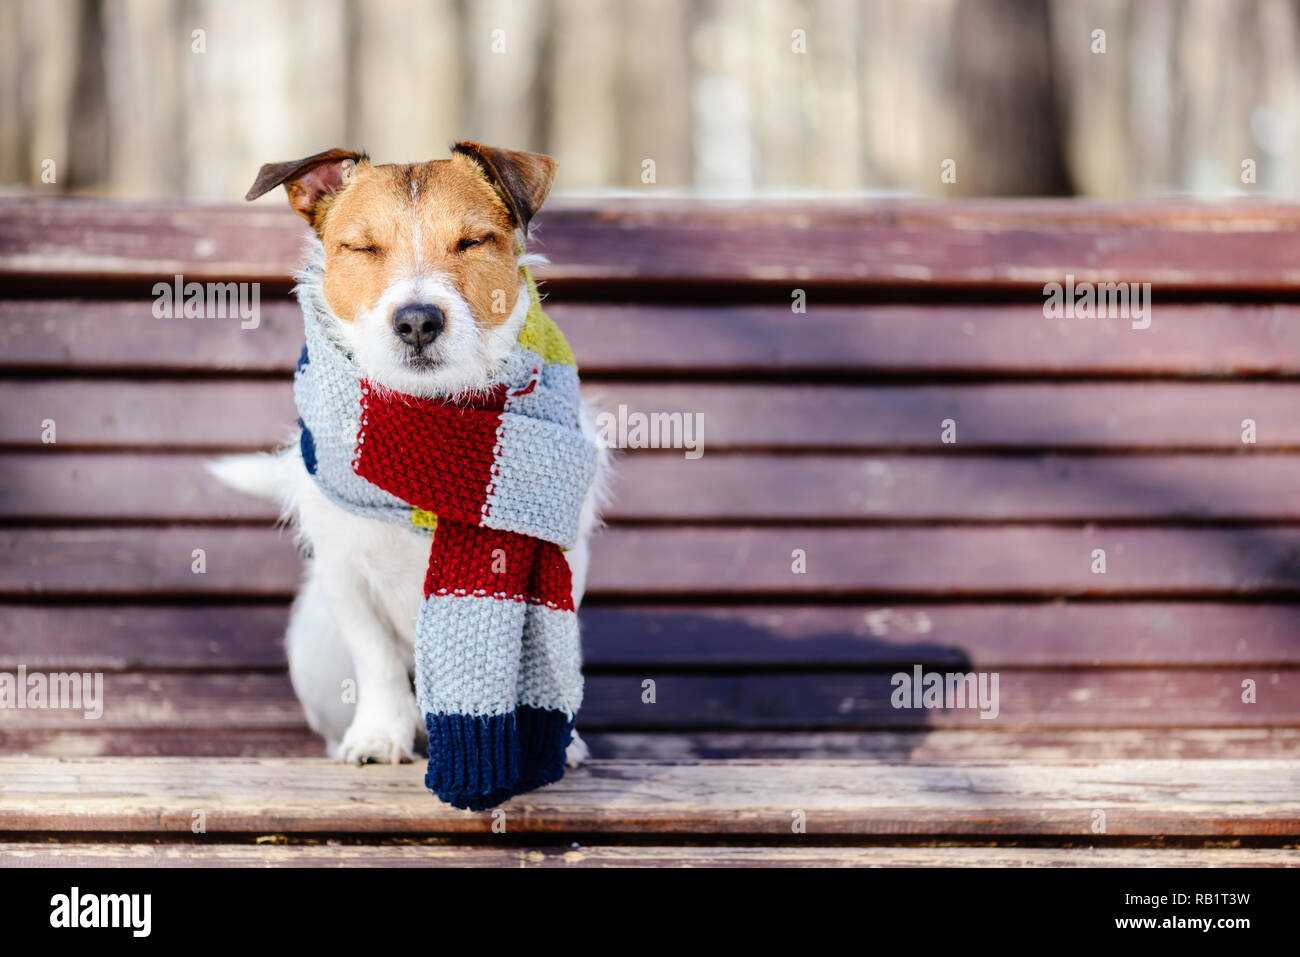 Hygge concept with happy dog wearing cozy warm scarf - Stock Image